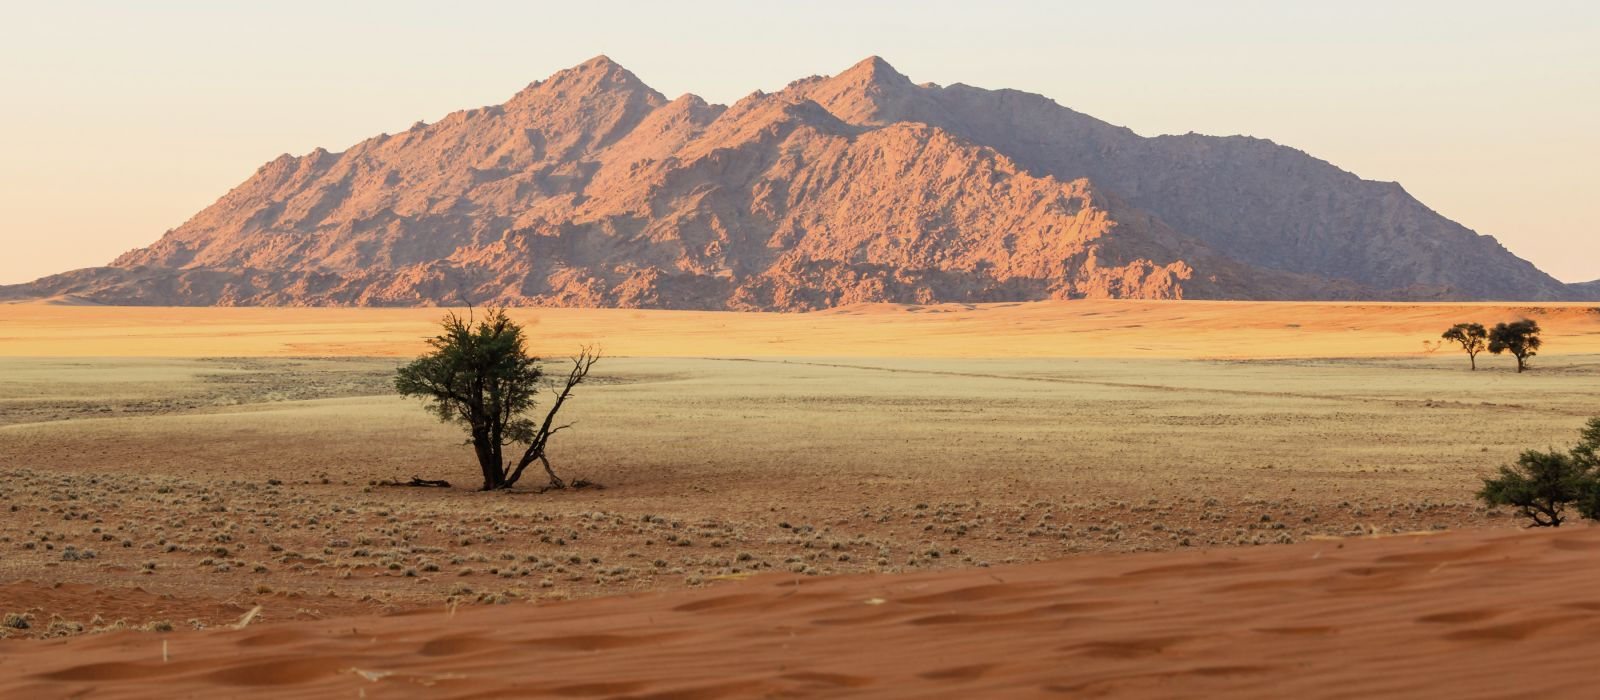 Red sand dunes and granite outcrops in Sesriem, Namibia, Africa